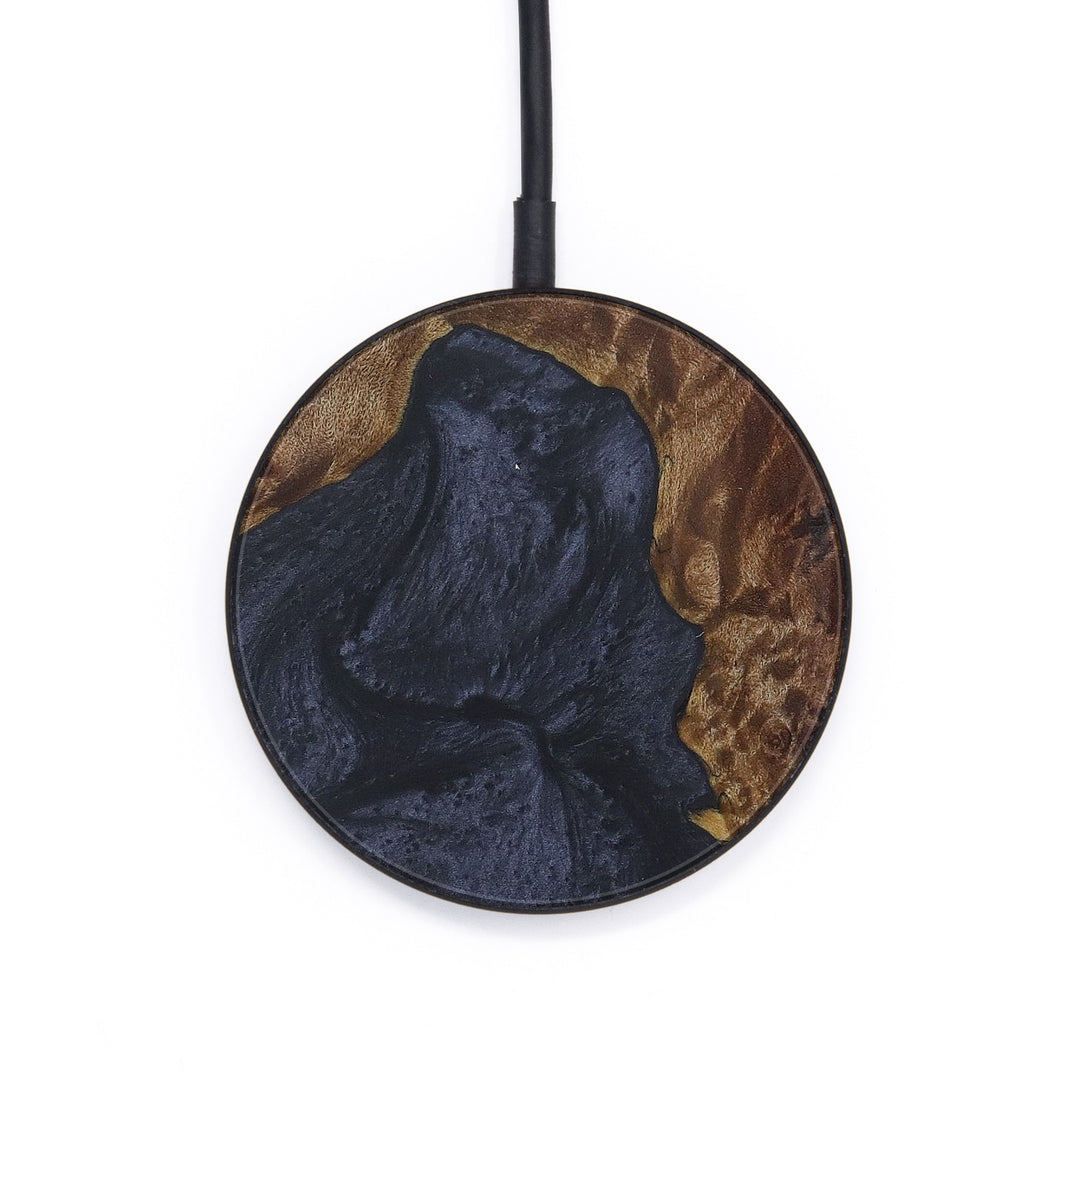 Circle Wood+Resin Wireless Charger - Almeria (Pure Black, 408728)